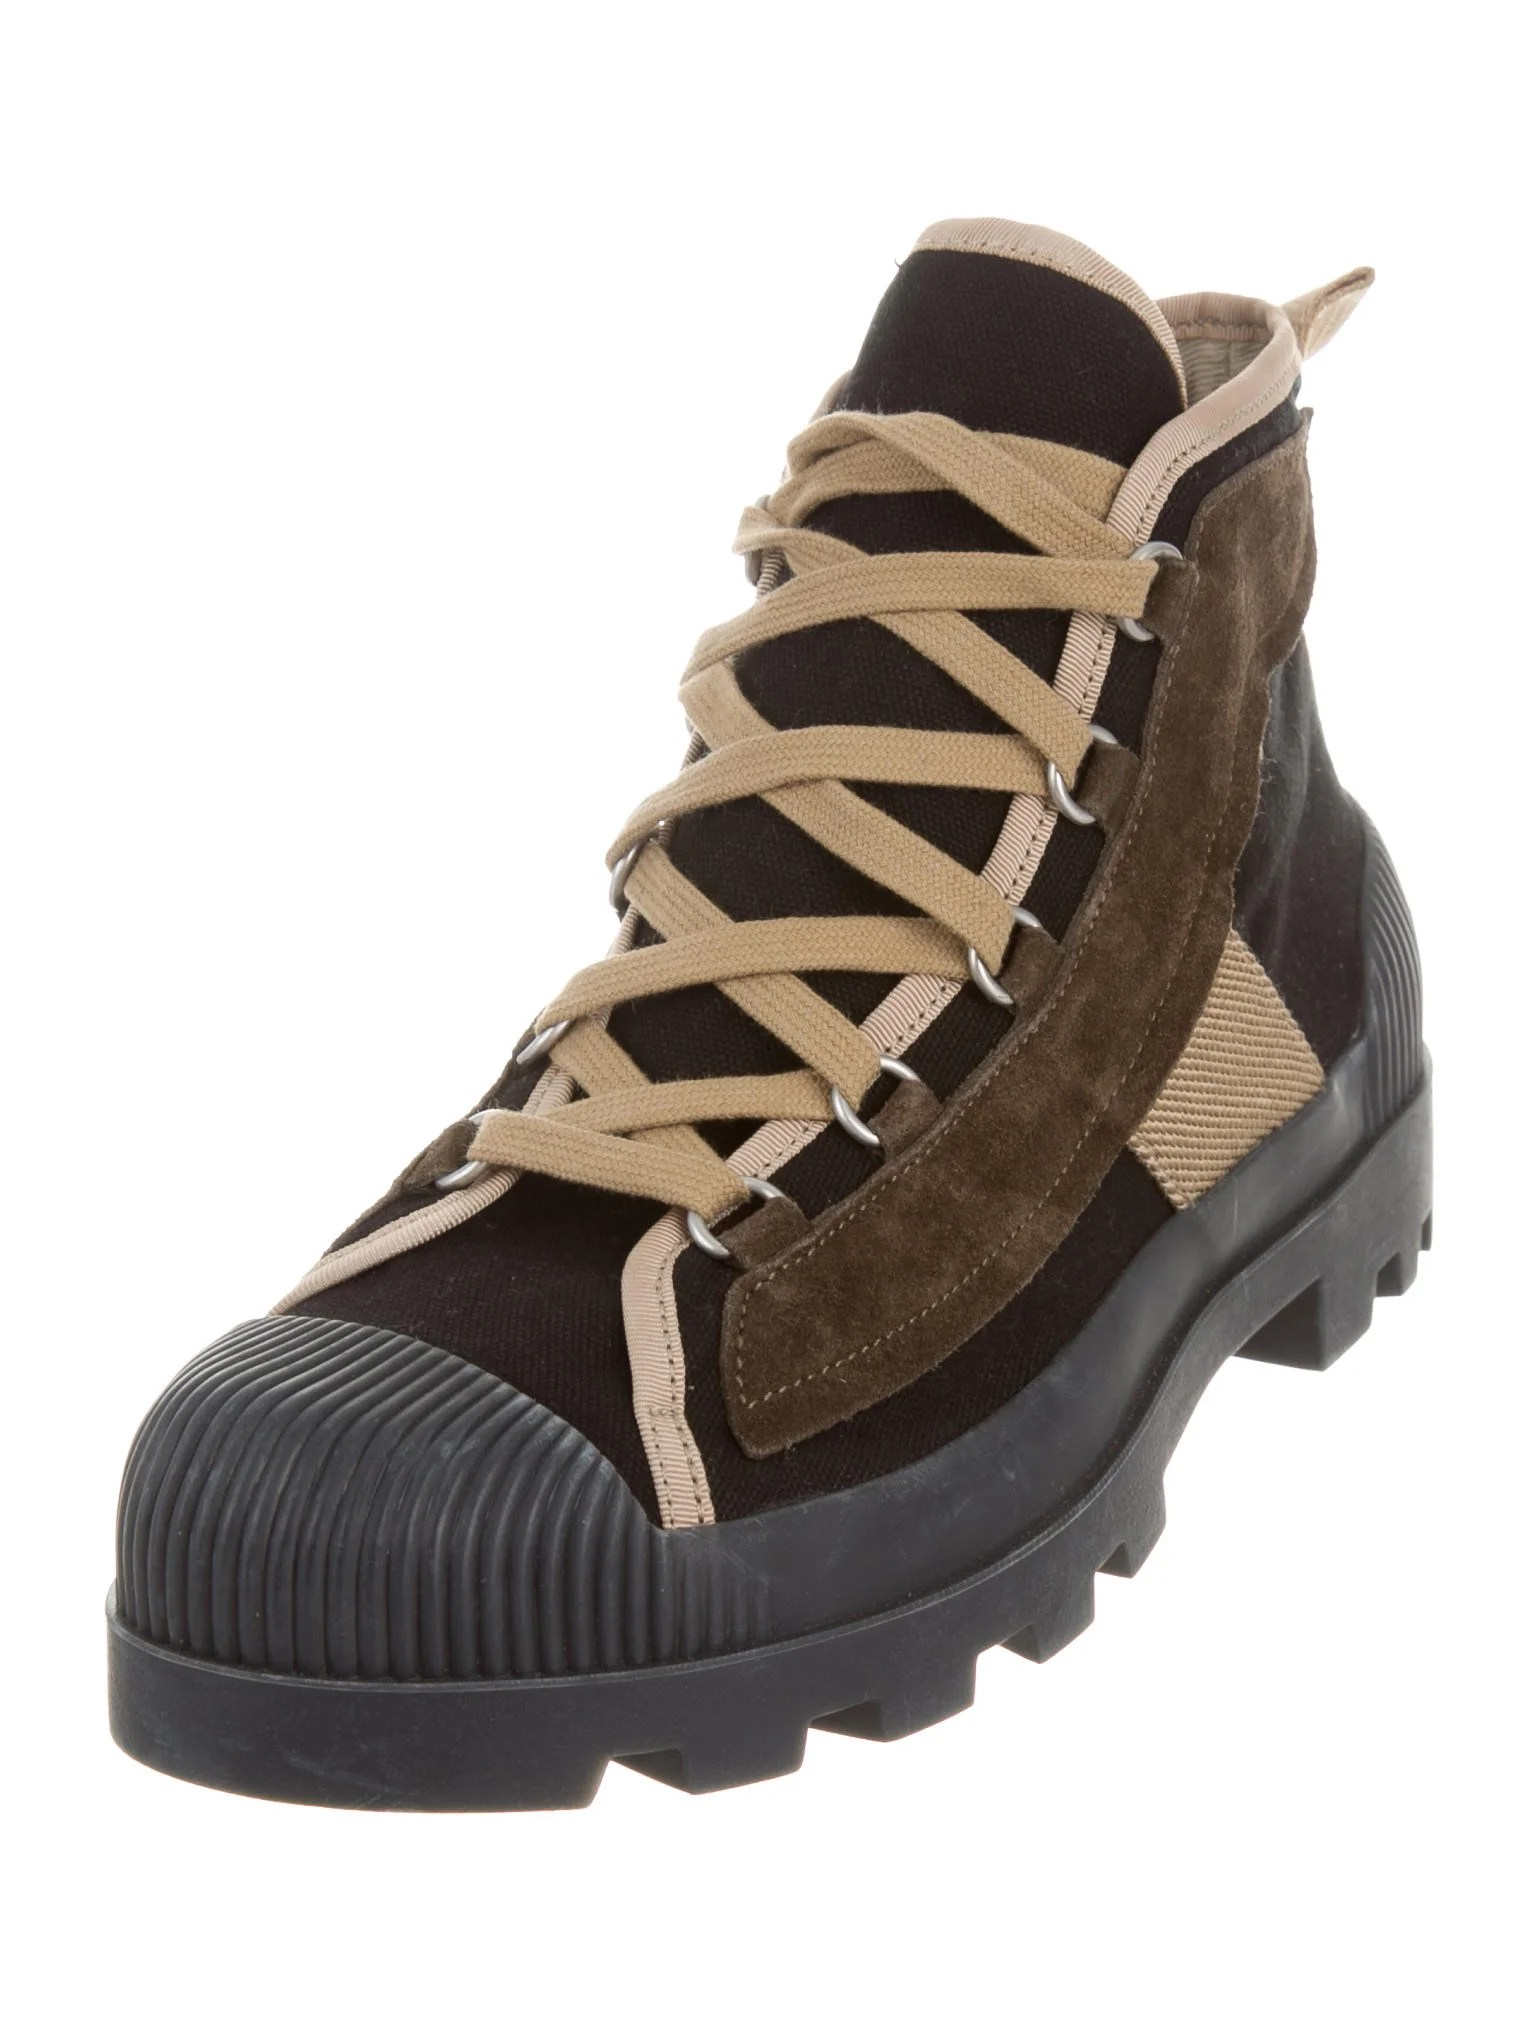 Acne Daniel Hiking Boots Shoes Acn30397 The Realreal